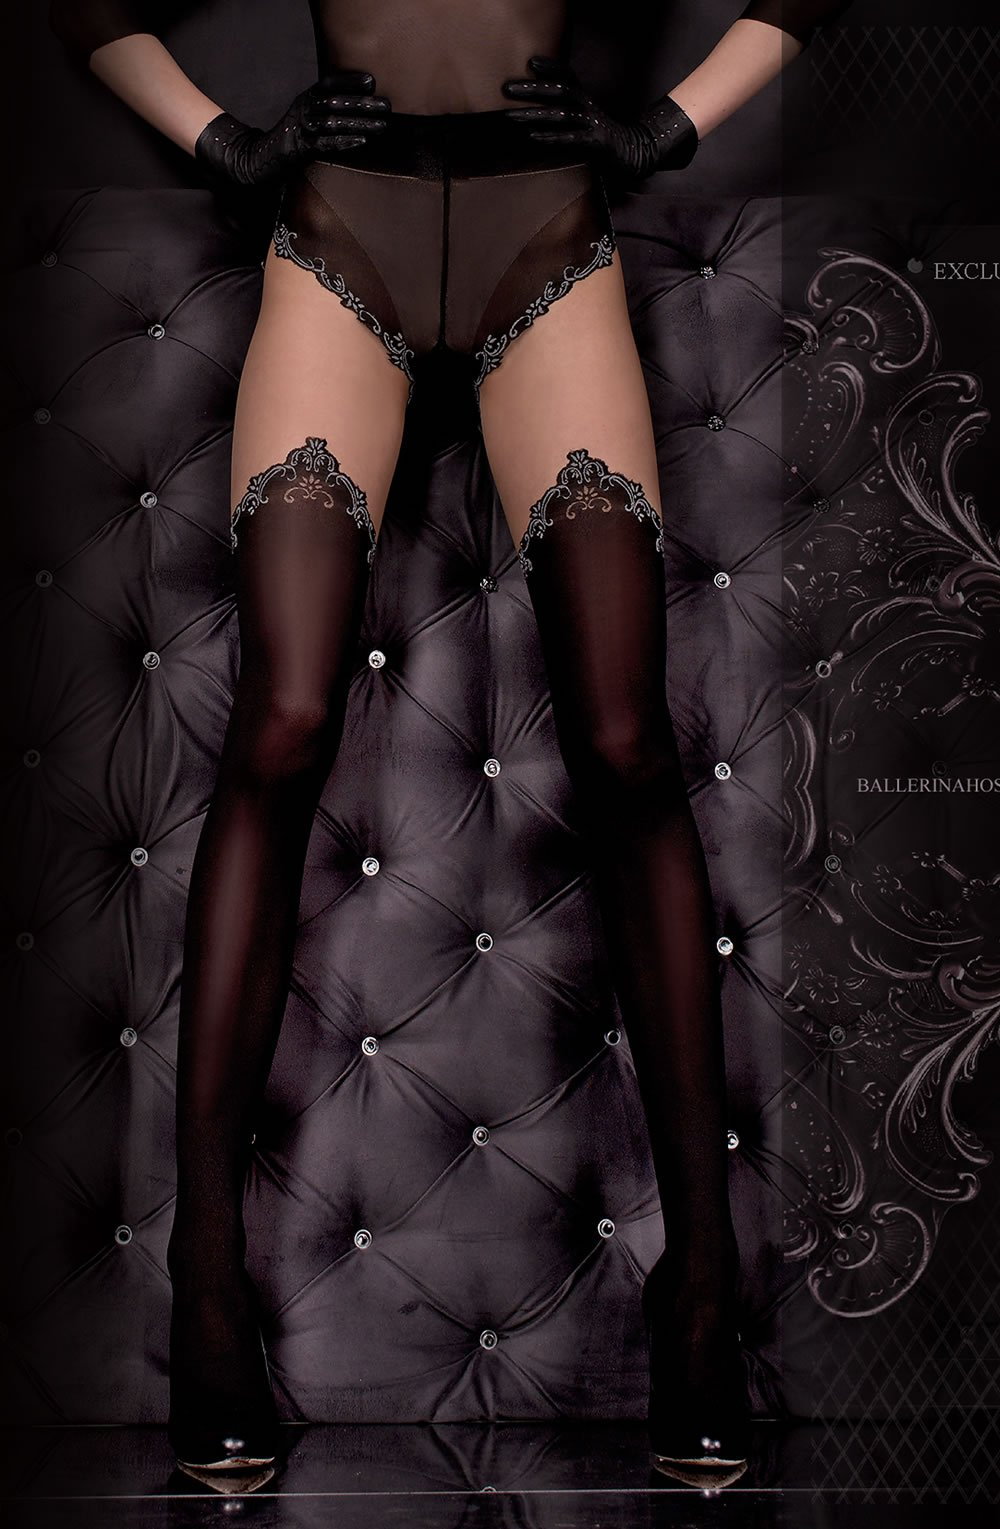 Ballerina 305 Tights Nero (Black) / Skin - Lingerie Best